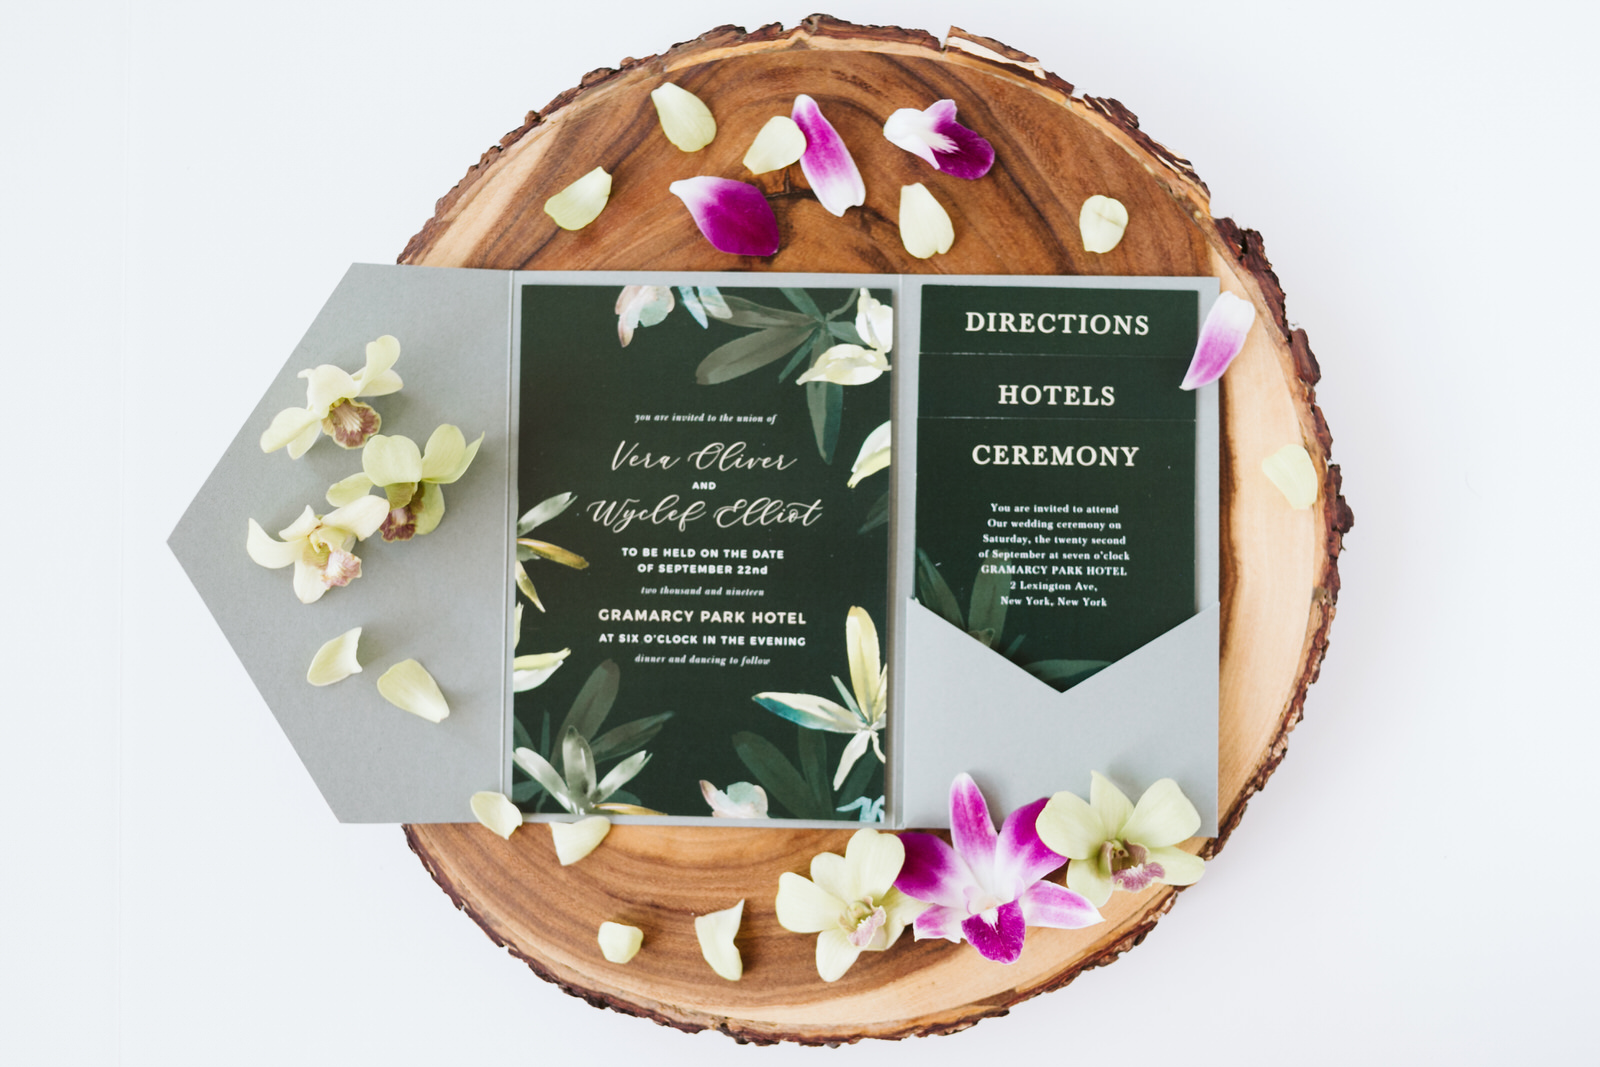 Wedding Stationary Hawaii orchid petals Wooden Basic invite Block directions Ceremony Hotels